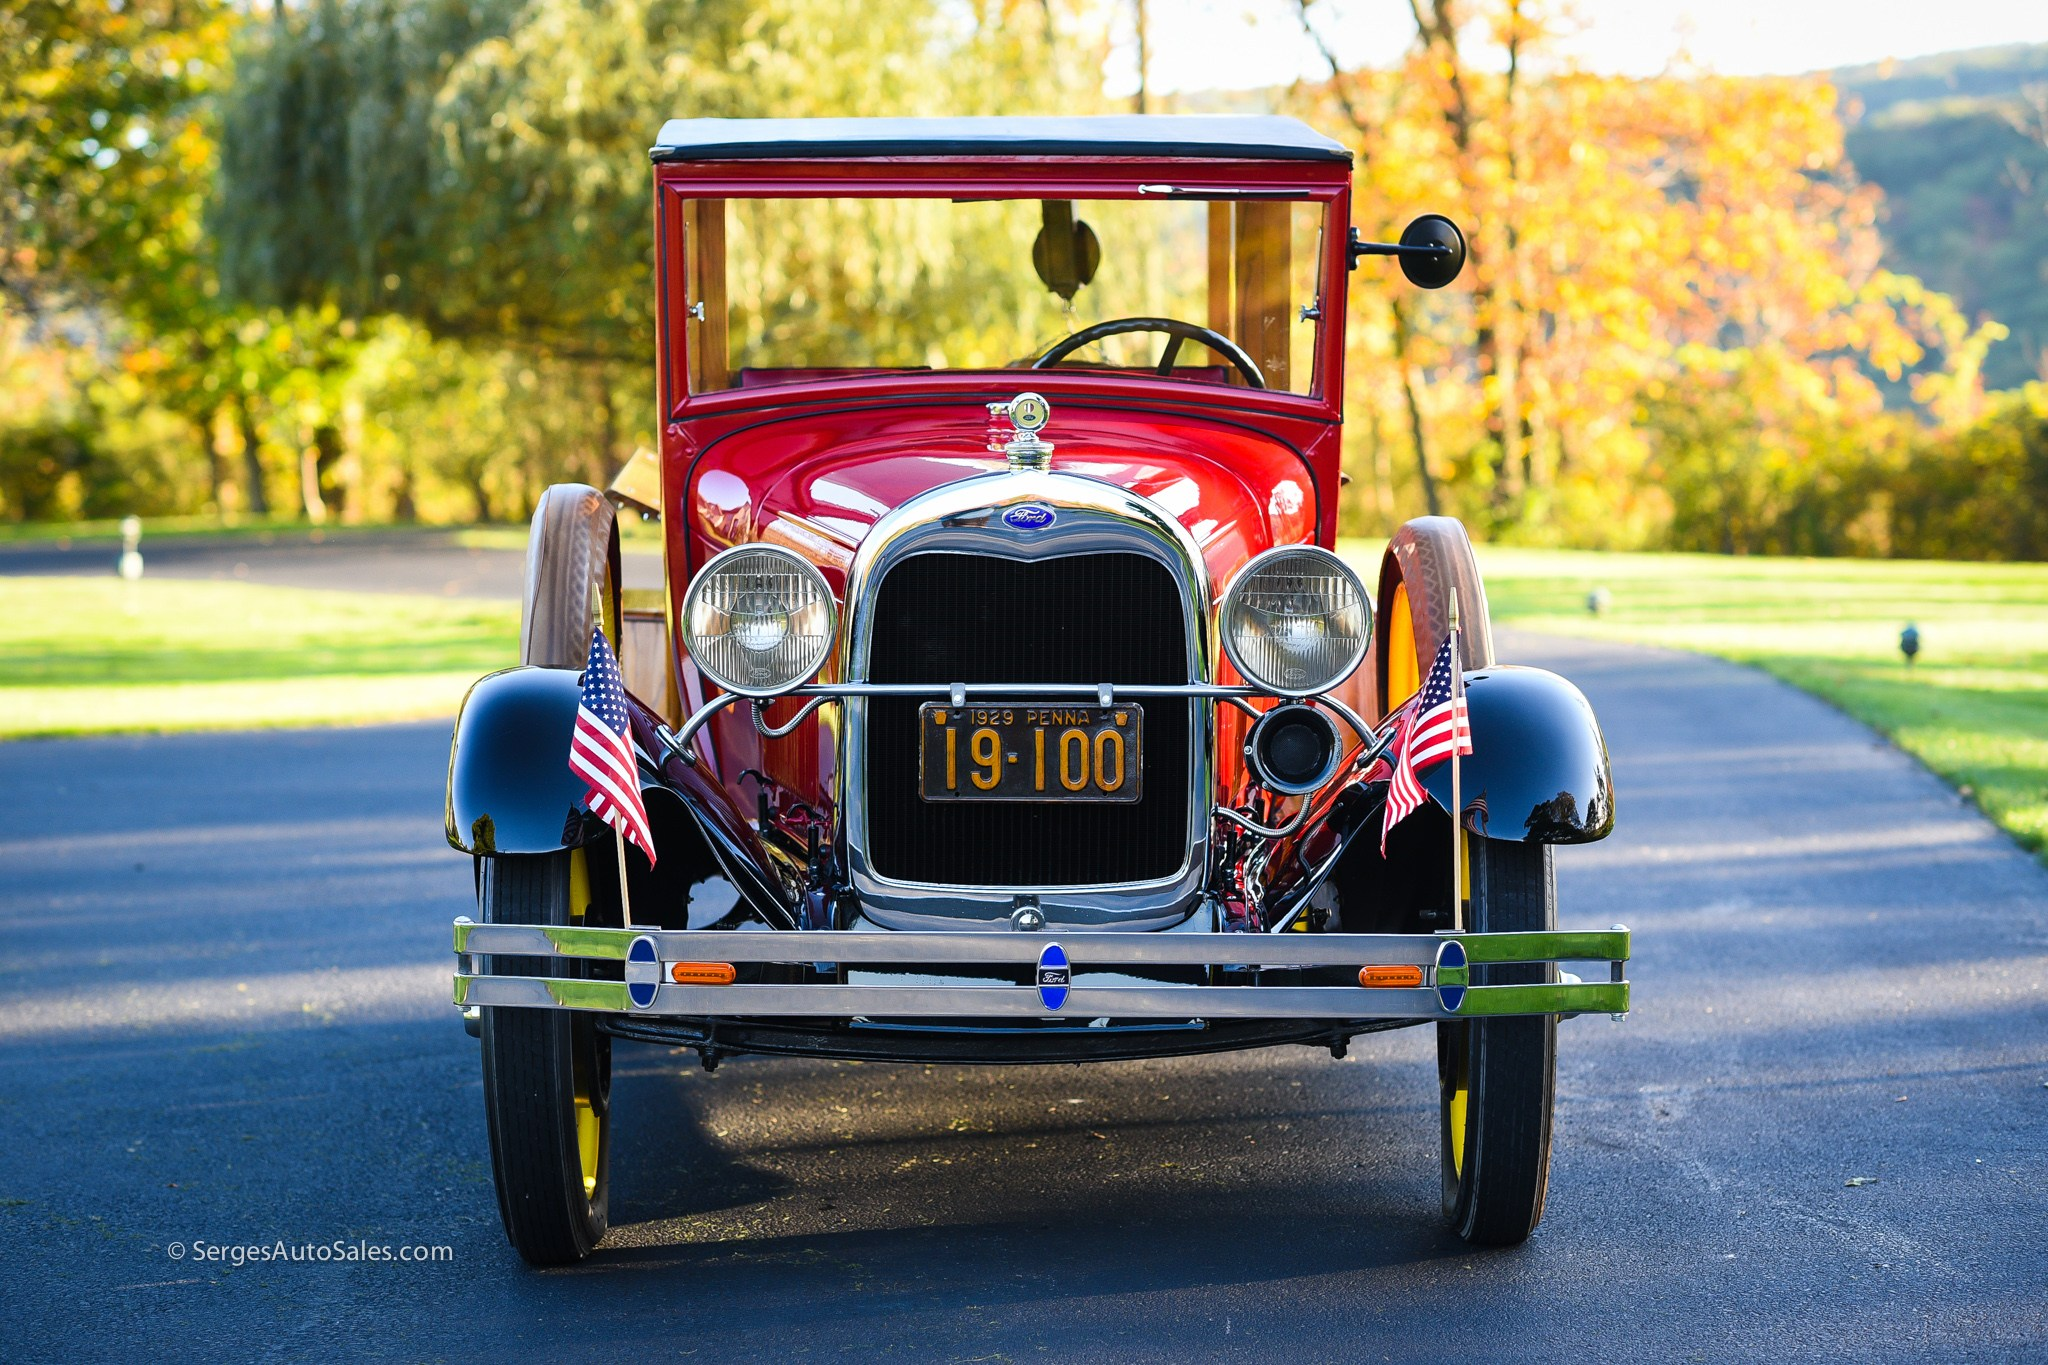 Car for Sale north East Luxury 1929 ford Huckster Serges Auto Sales Of northeast Pa